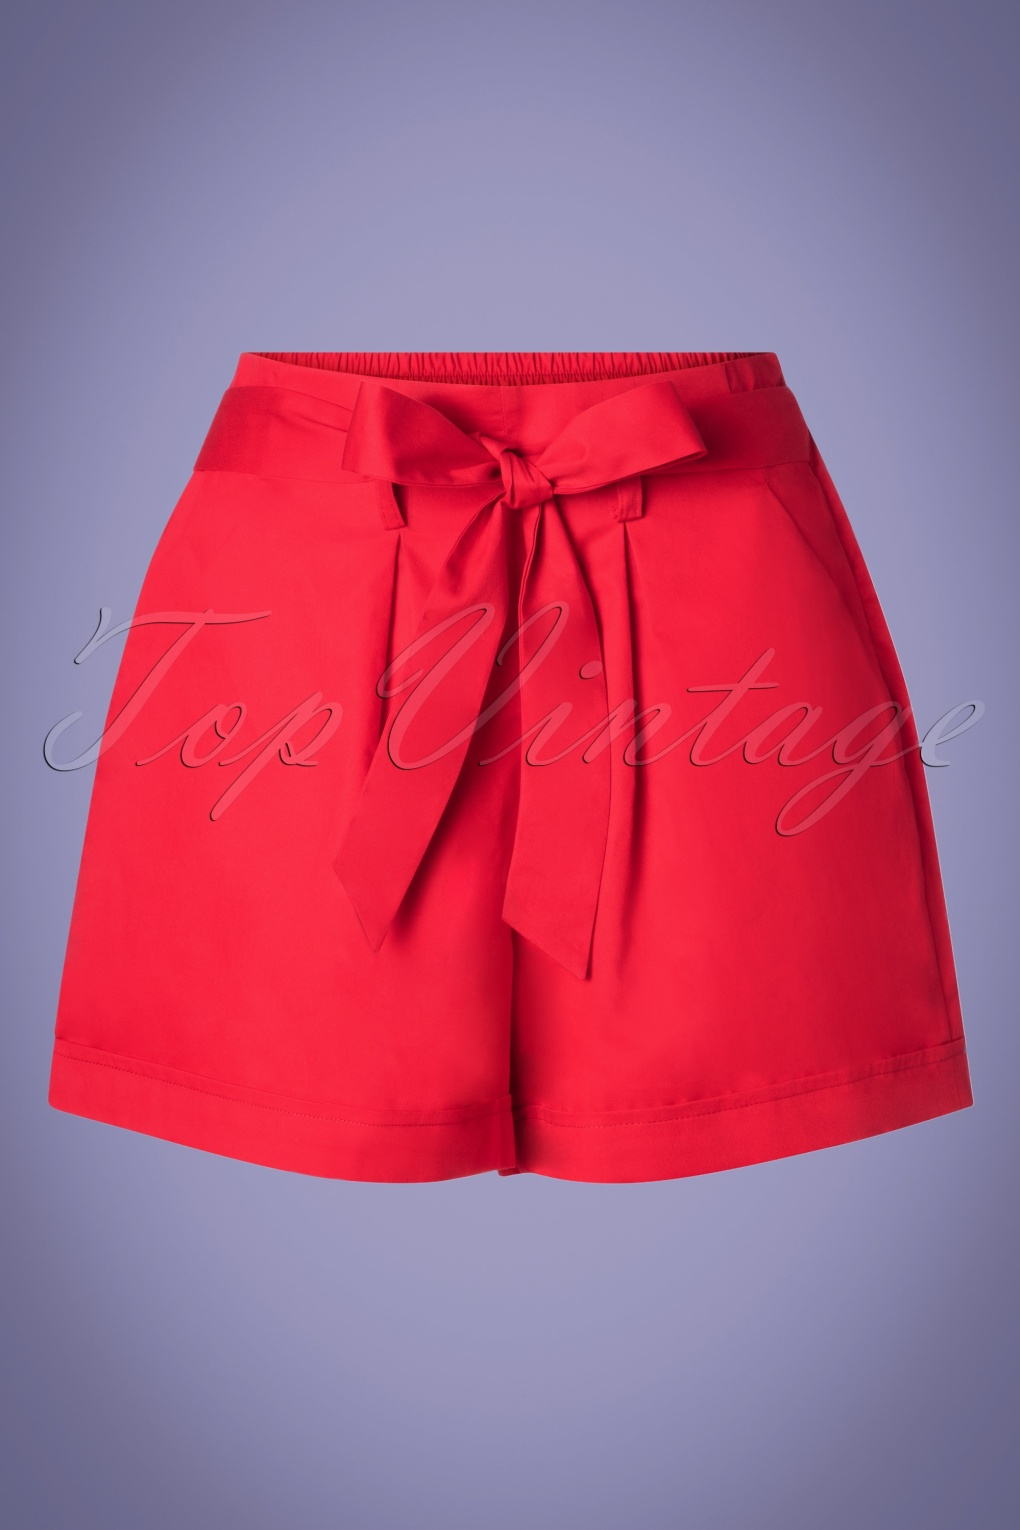 1950s Pinup Shorts, Retro Shorts 50s Soren Tie Shorts in Lipstick Red £31.40 AT vintagedancer.com